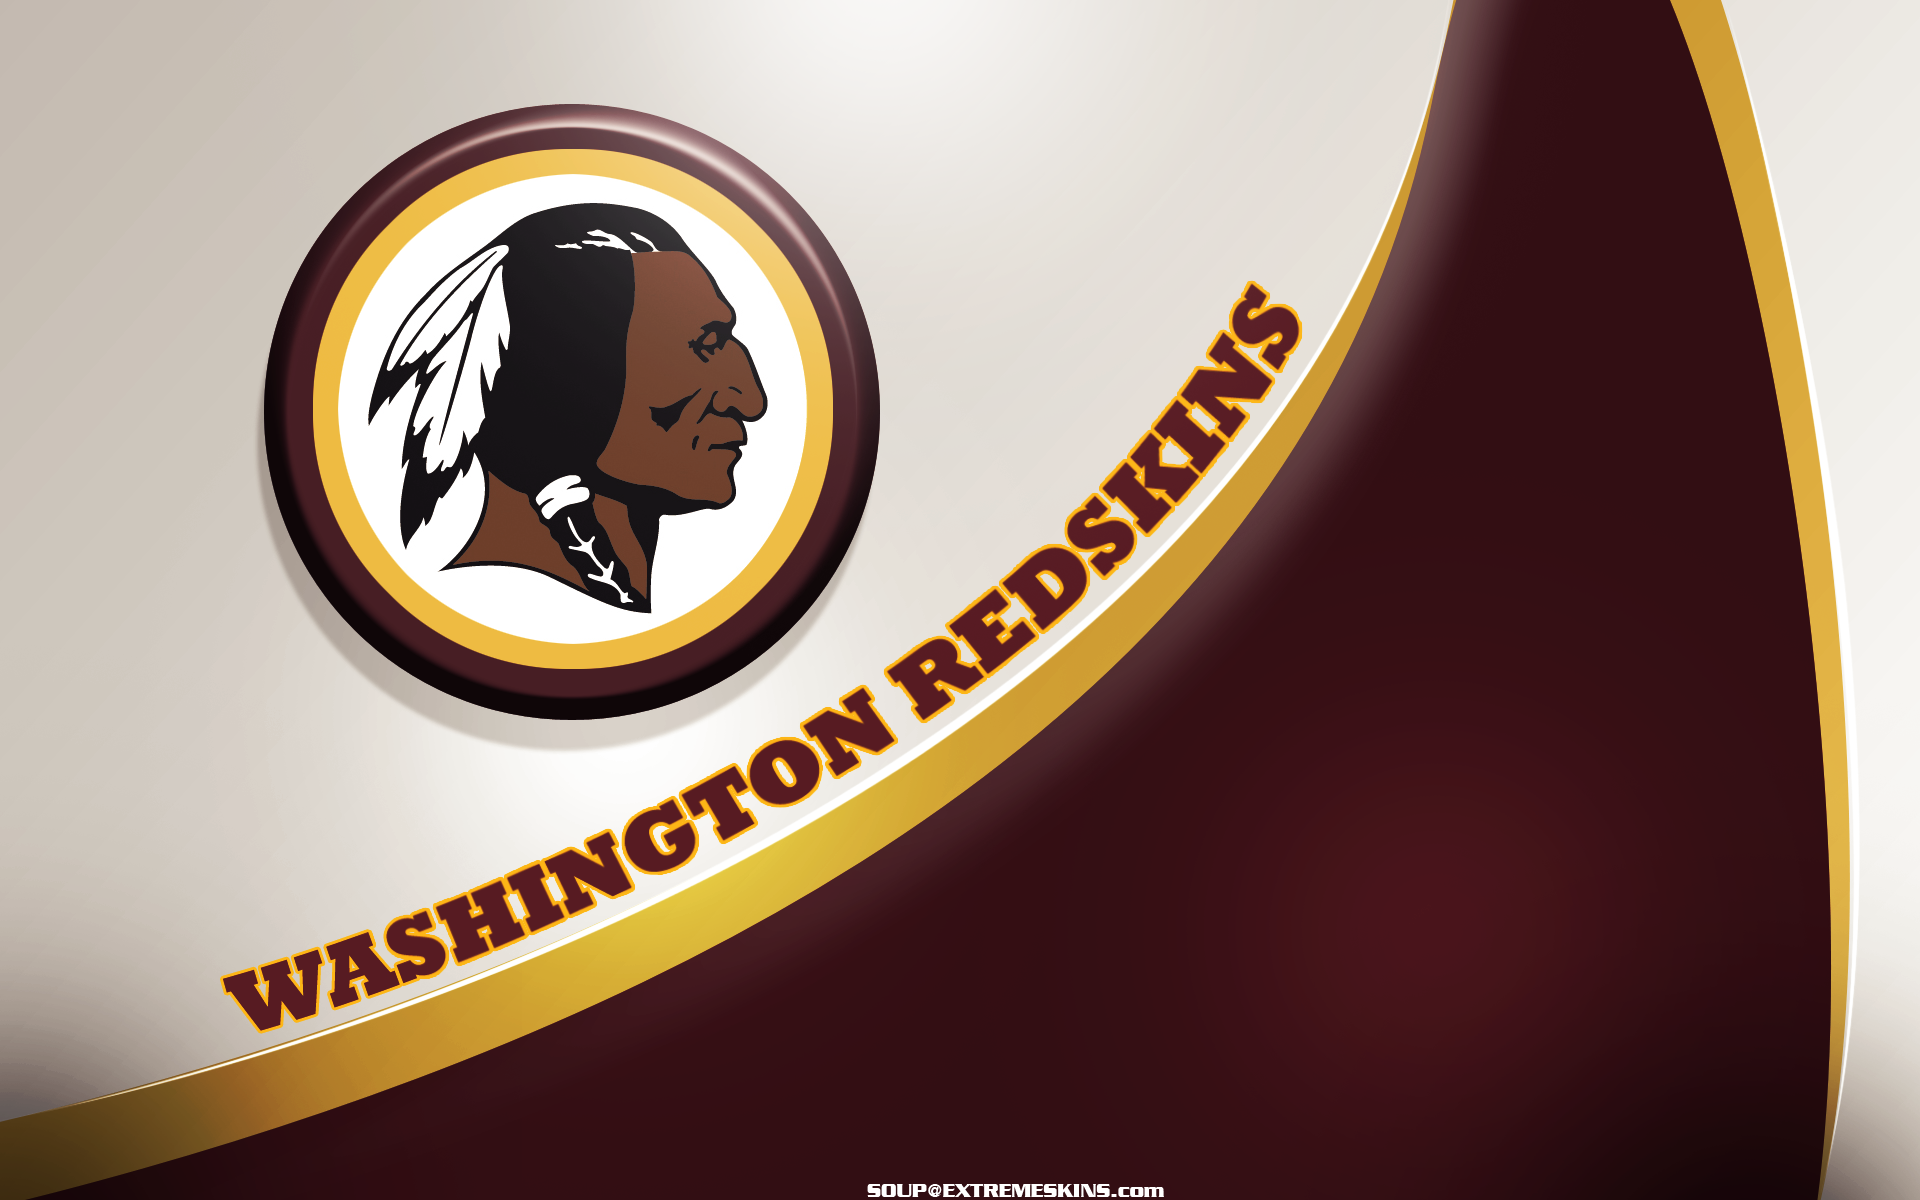 Washington Redskins wallpaper ever Washington Redskins wallpapers 1920x1200